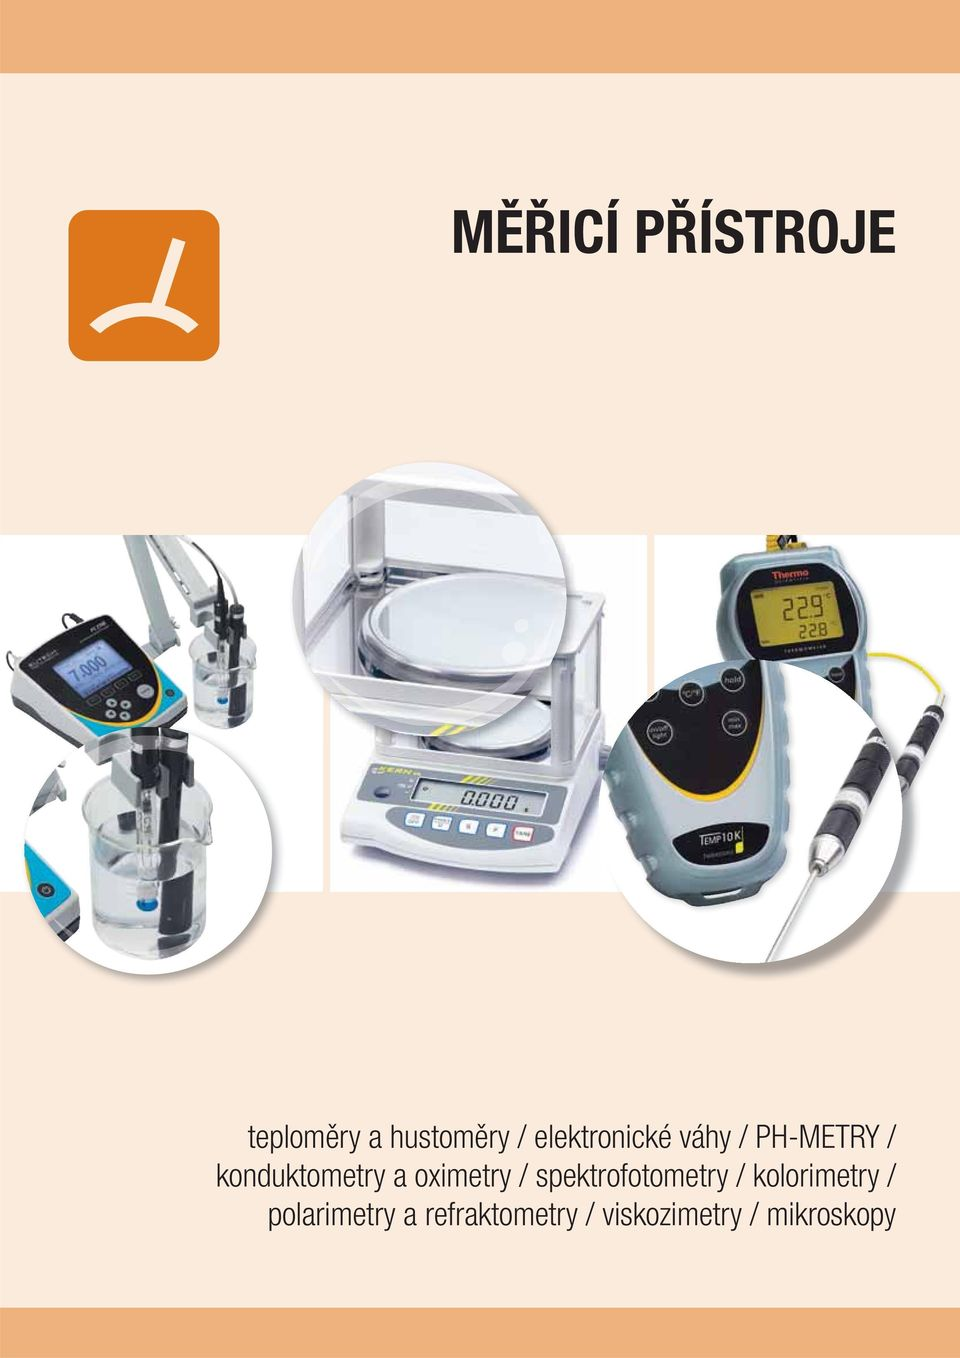 oximetry / spektrofotometry / kolorimetry /